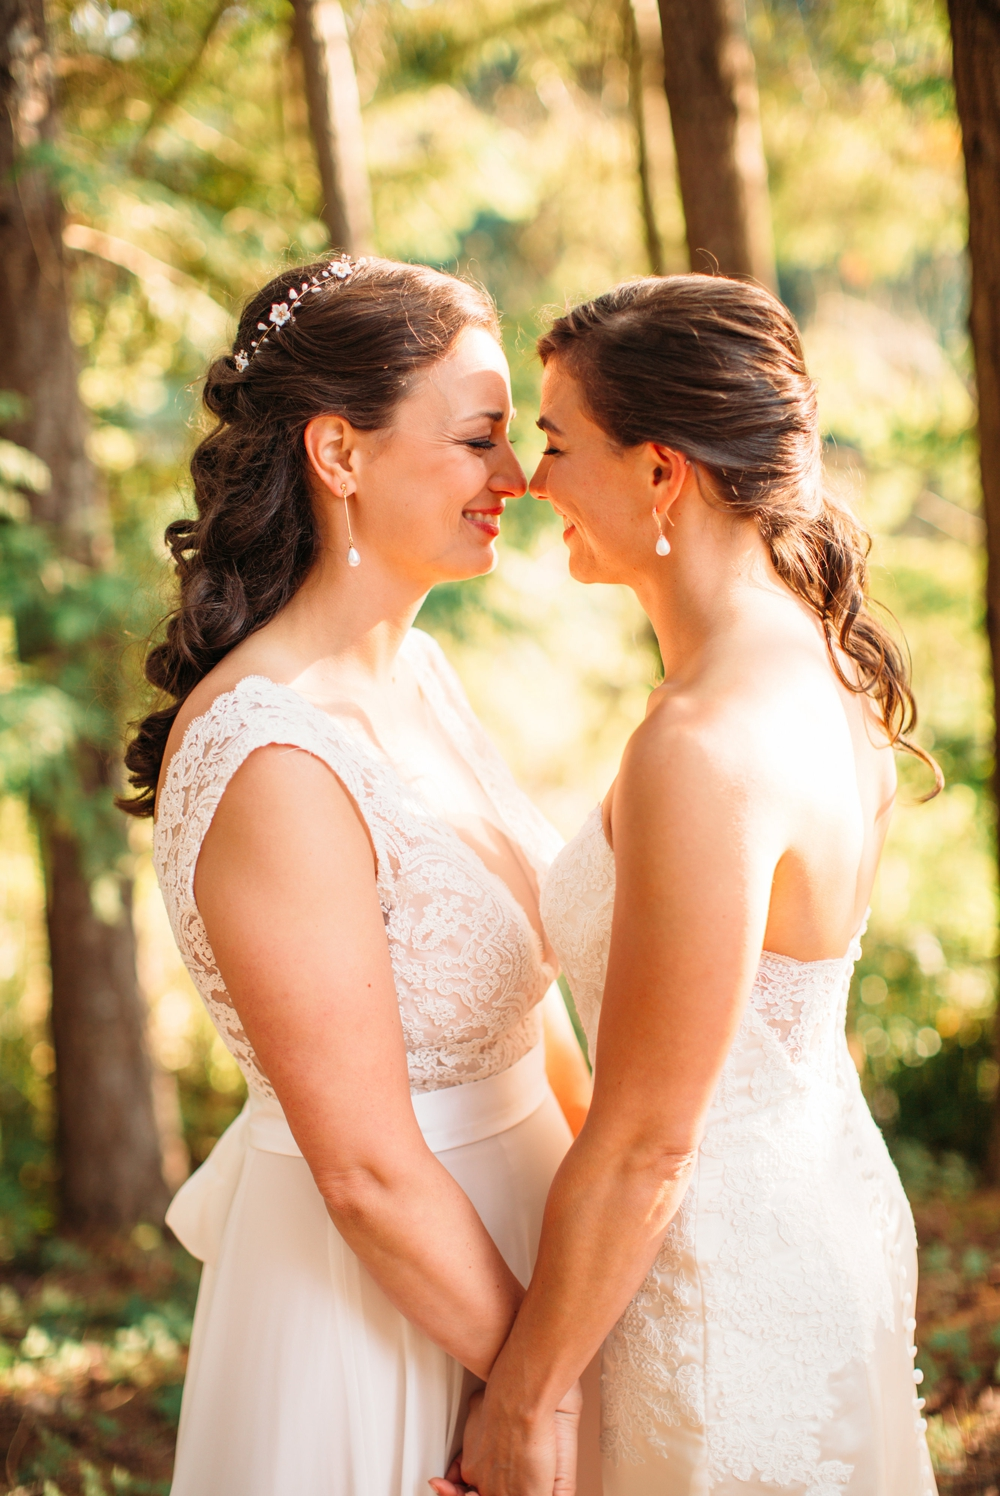 brides-nuzzle-in-forest